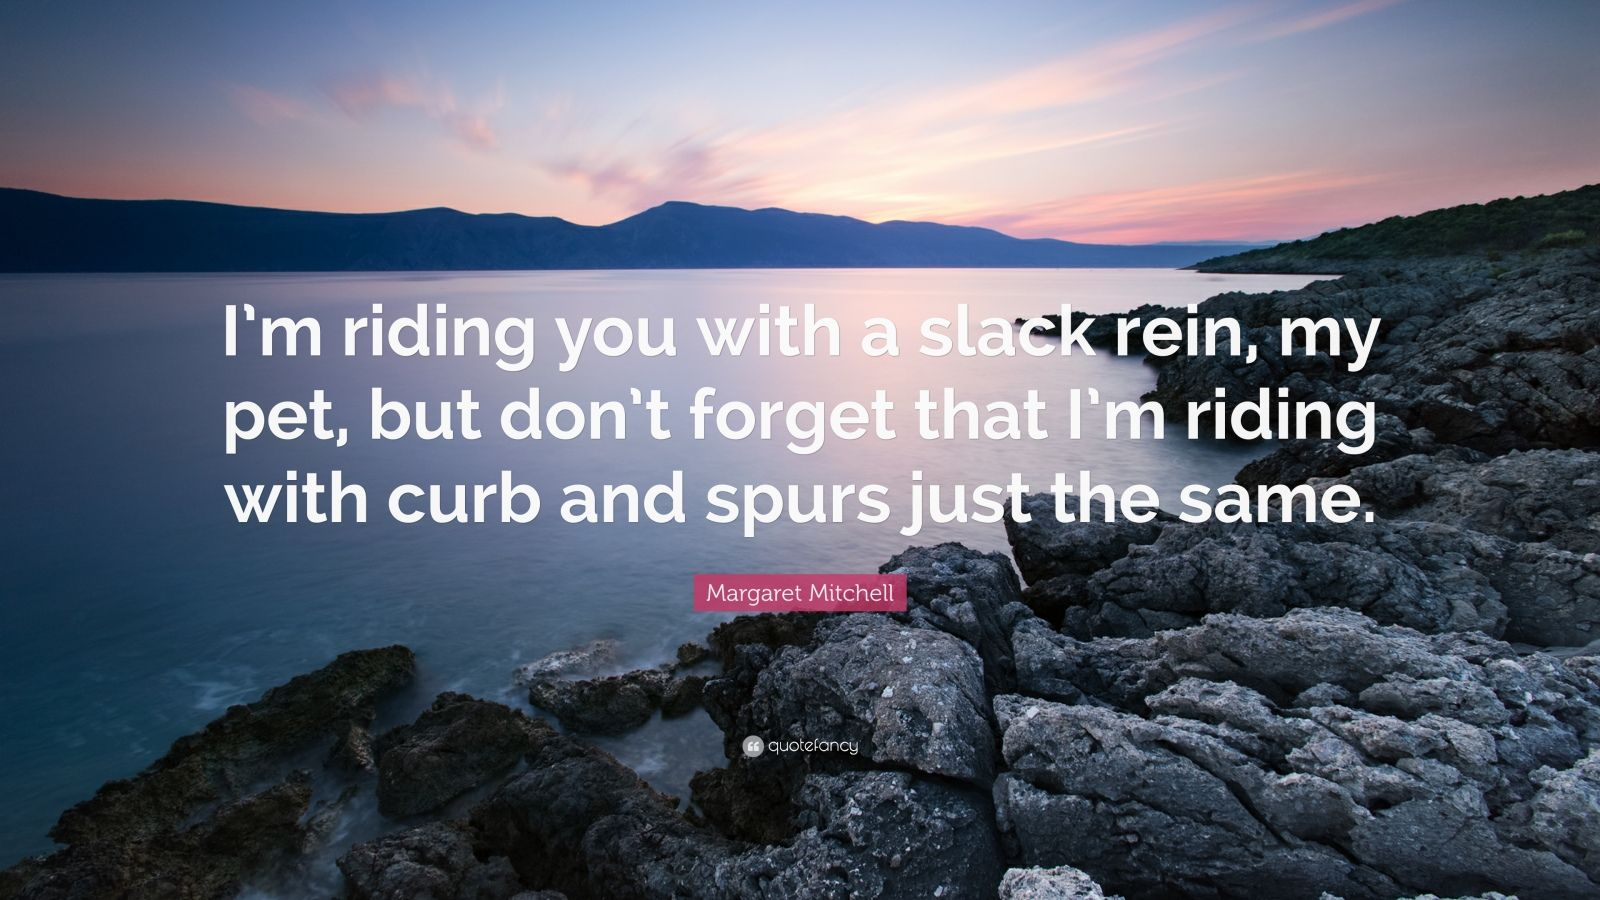 """Margaret Mitchell Quote: """"I'm riding you with a slack rein, my pet, but don't forget that I'm riding with curb and spurs just the same."""""""